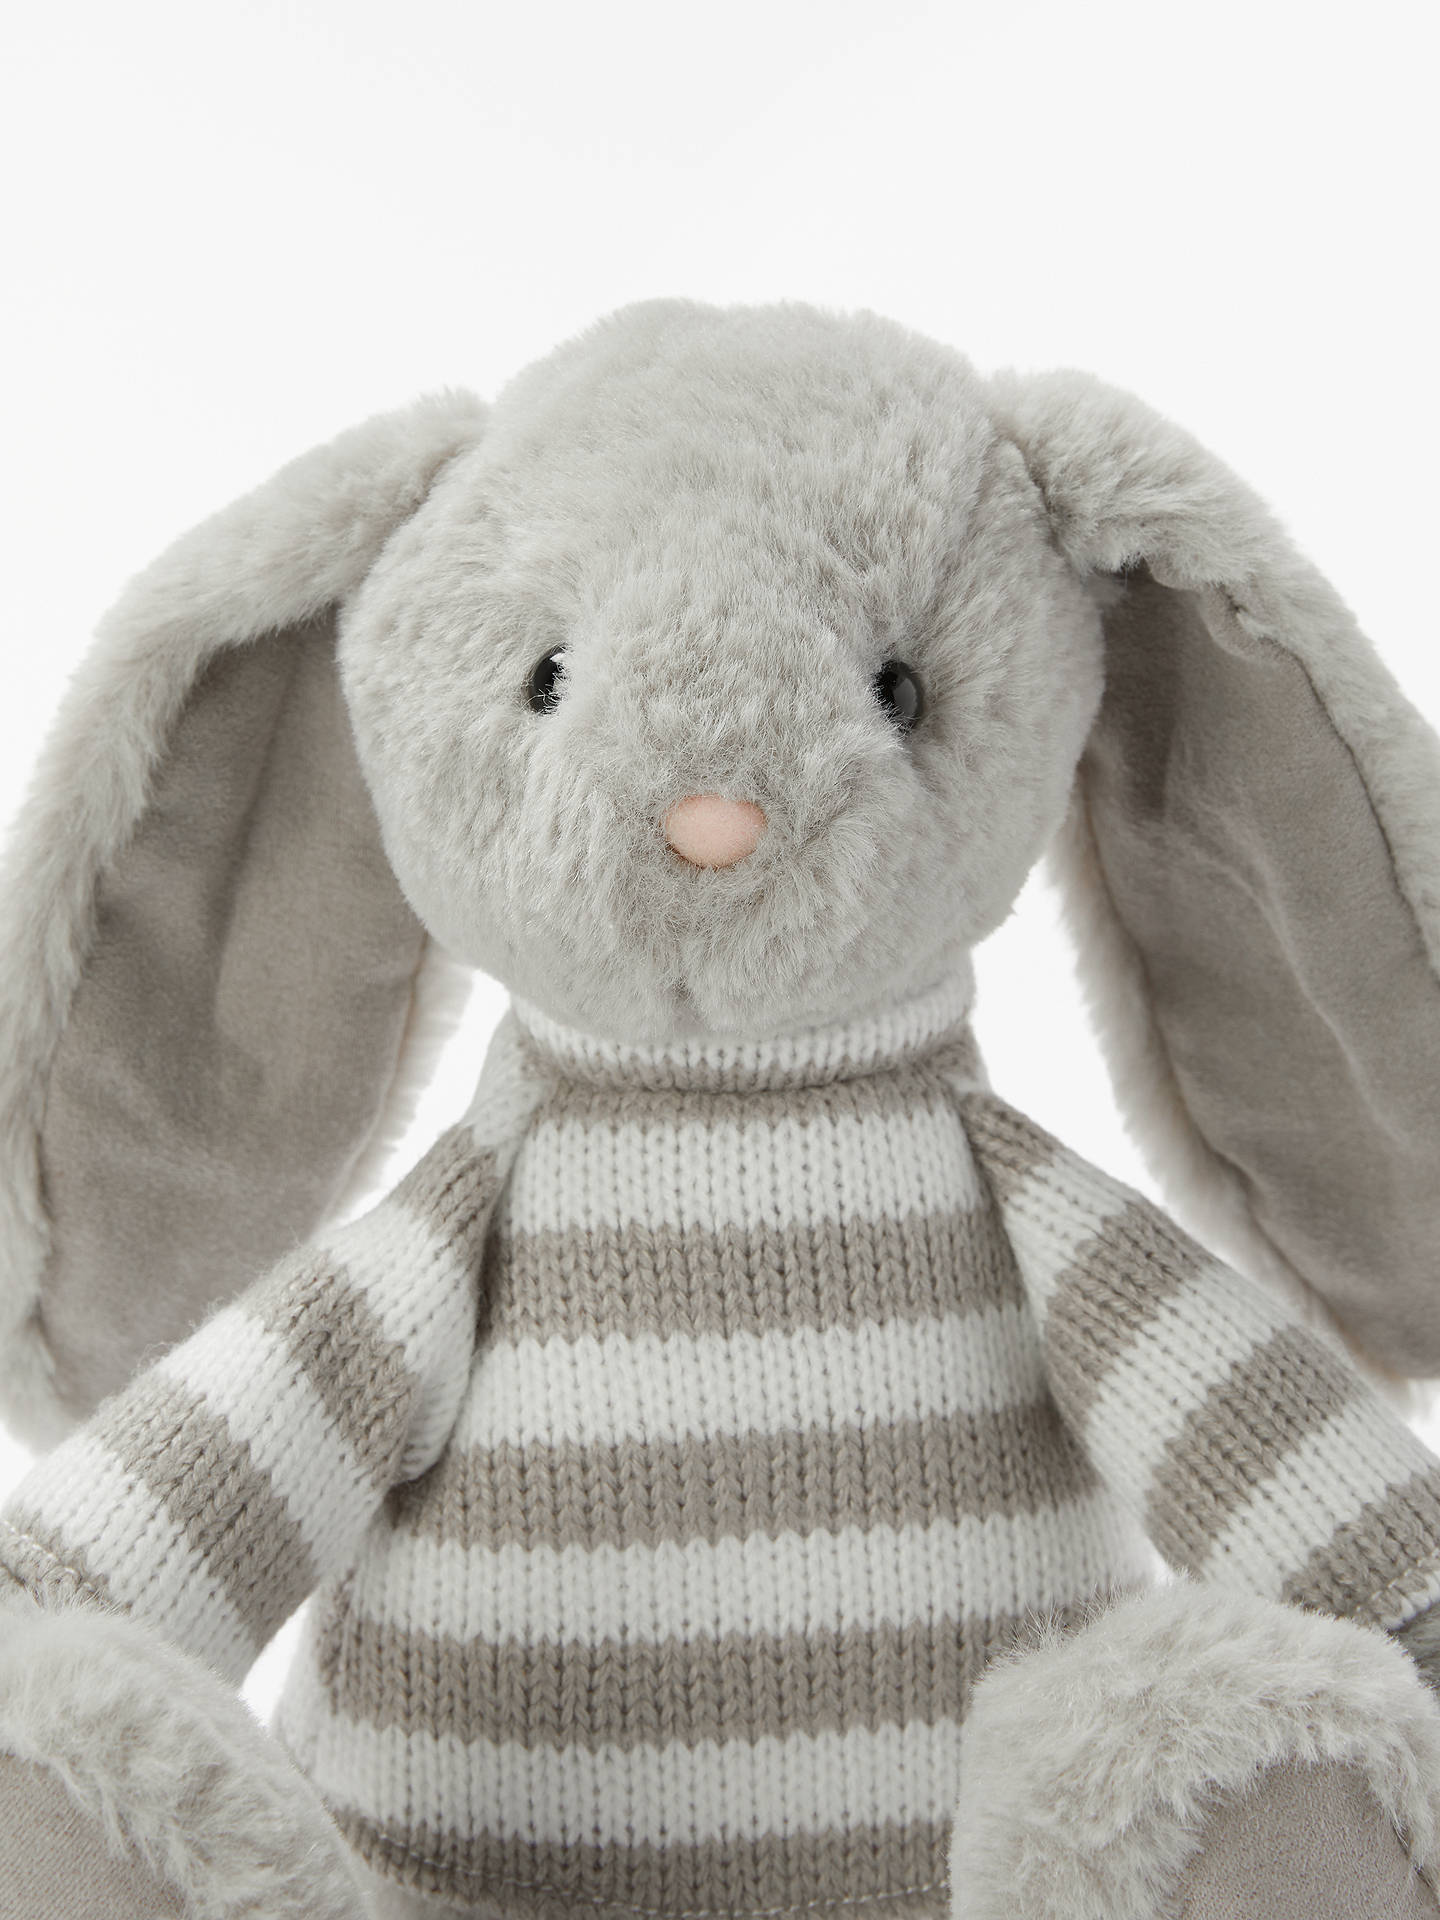 Buy John Lewis & Partners Bunny In a Stripe Jumper Soft Toy Online at johnlewis.com